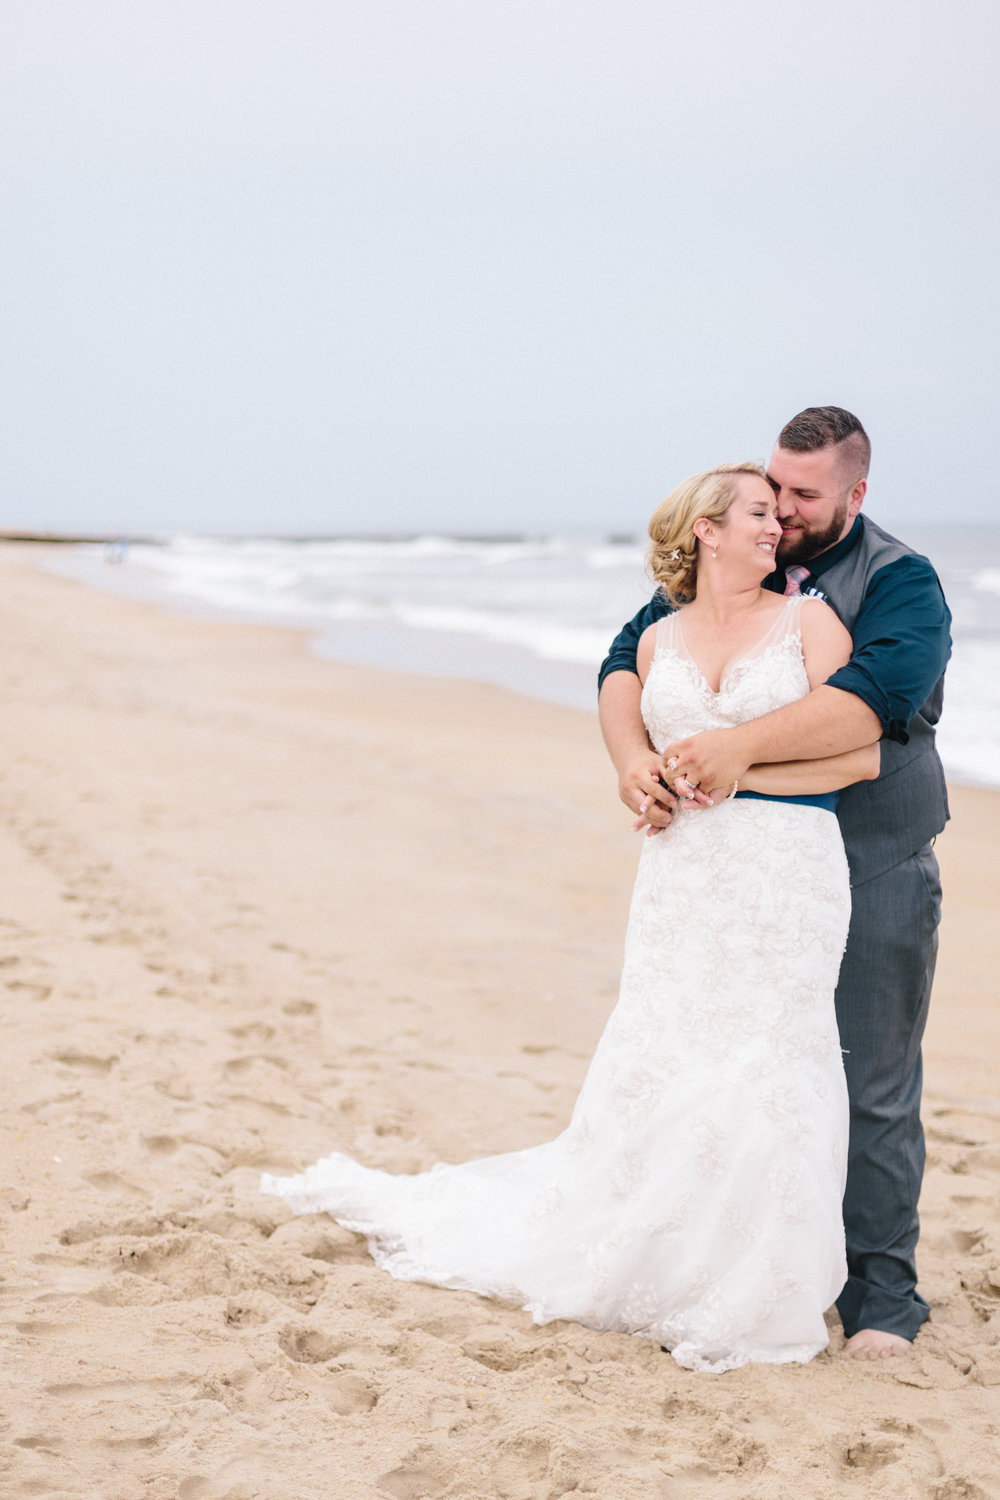 alyssa barletter photography buxton north carolina outer banks obx cape hatteras elopement intmate beach wedding-34.jpg